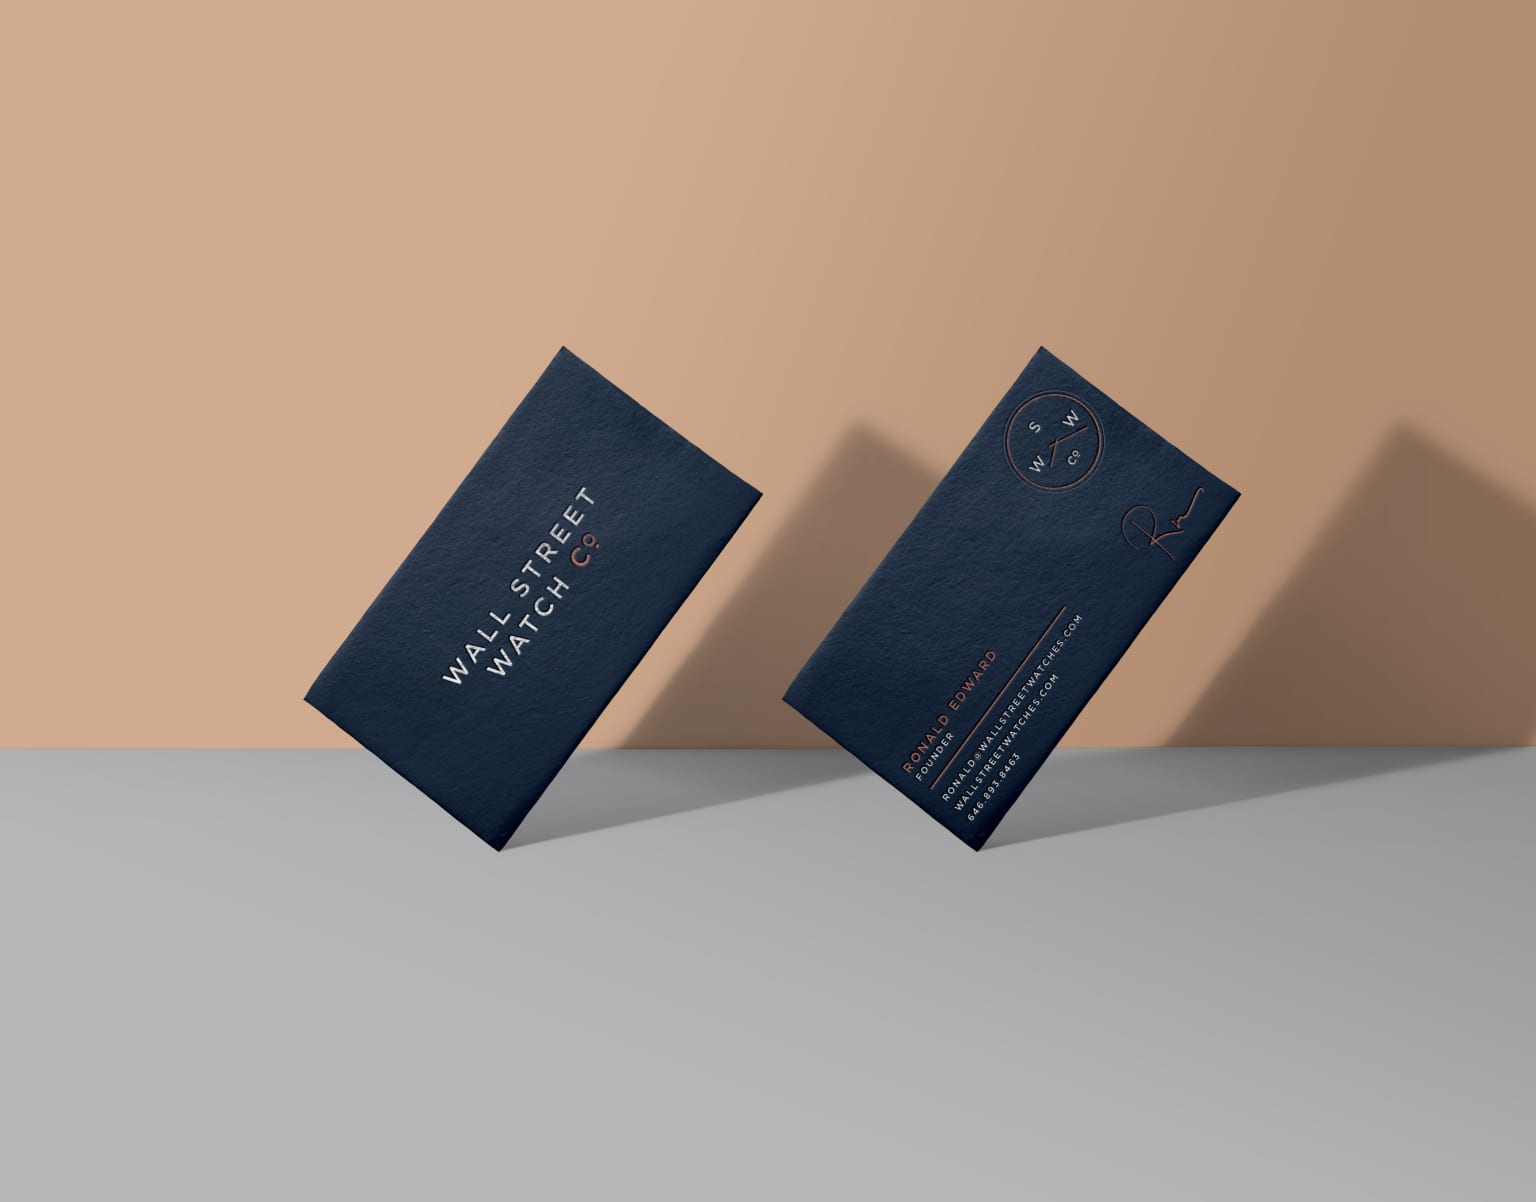 Wall Street Watch Co.: Brand Identity, Packaging Design